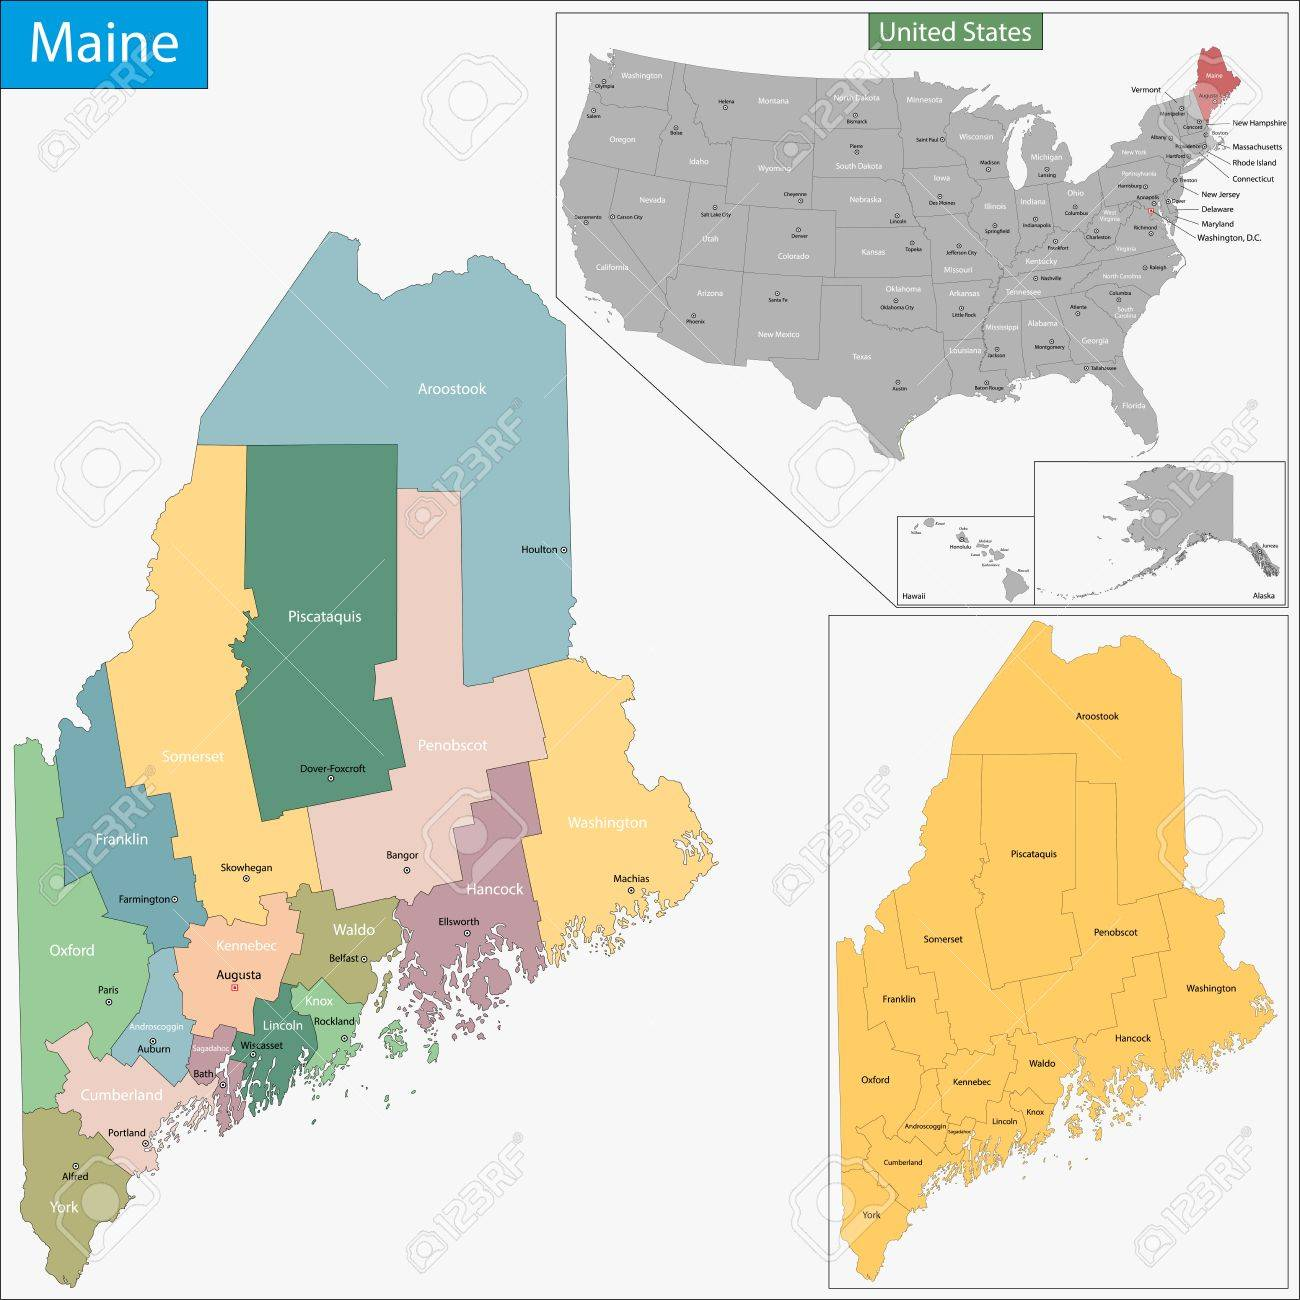 Map Of Maine State Designed In Illustration With The Counties - Maine county map